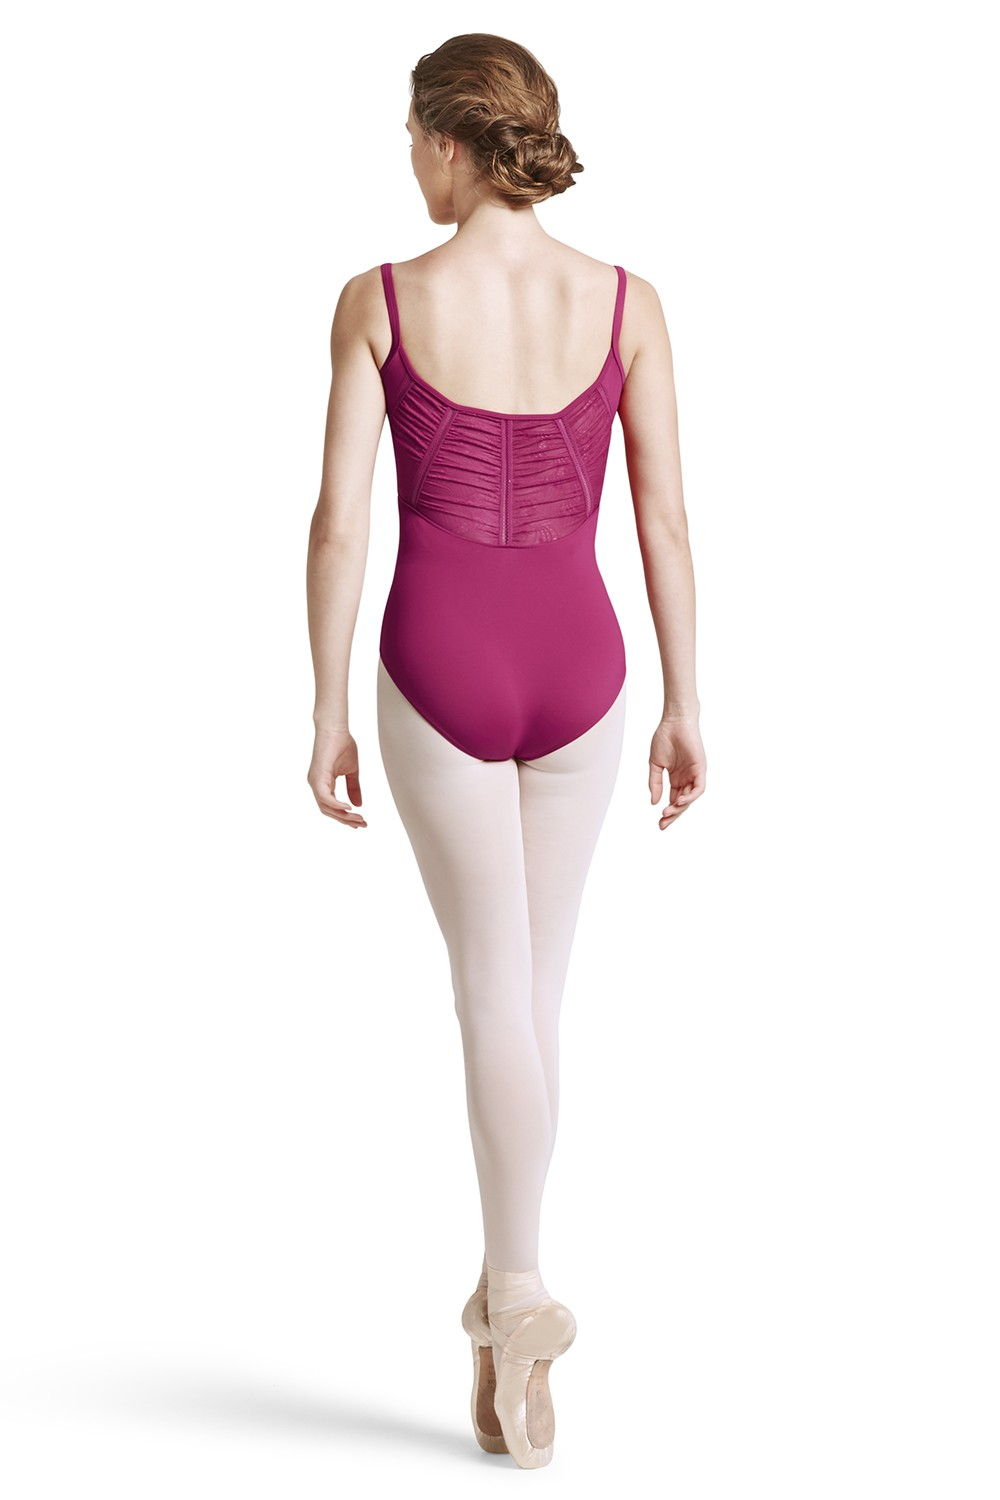 Anila Womens Camisole Leotards